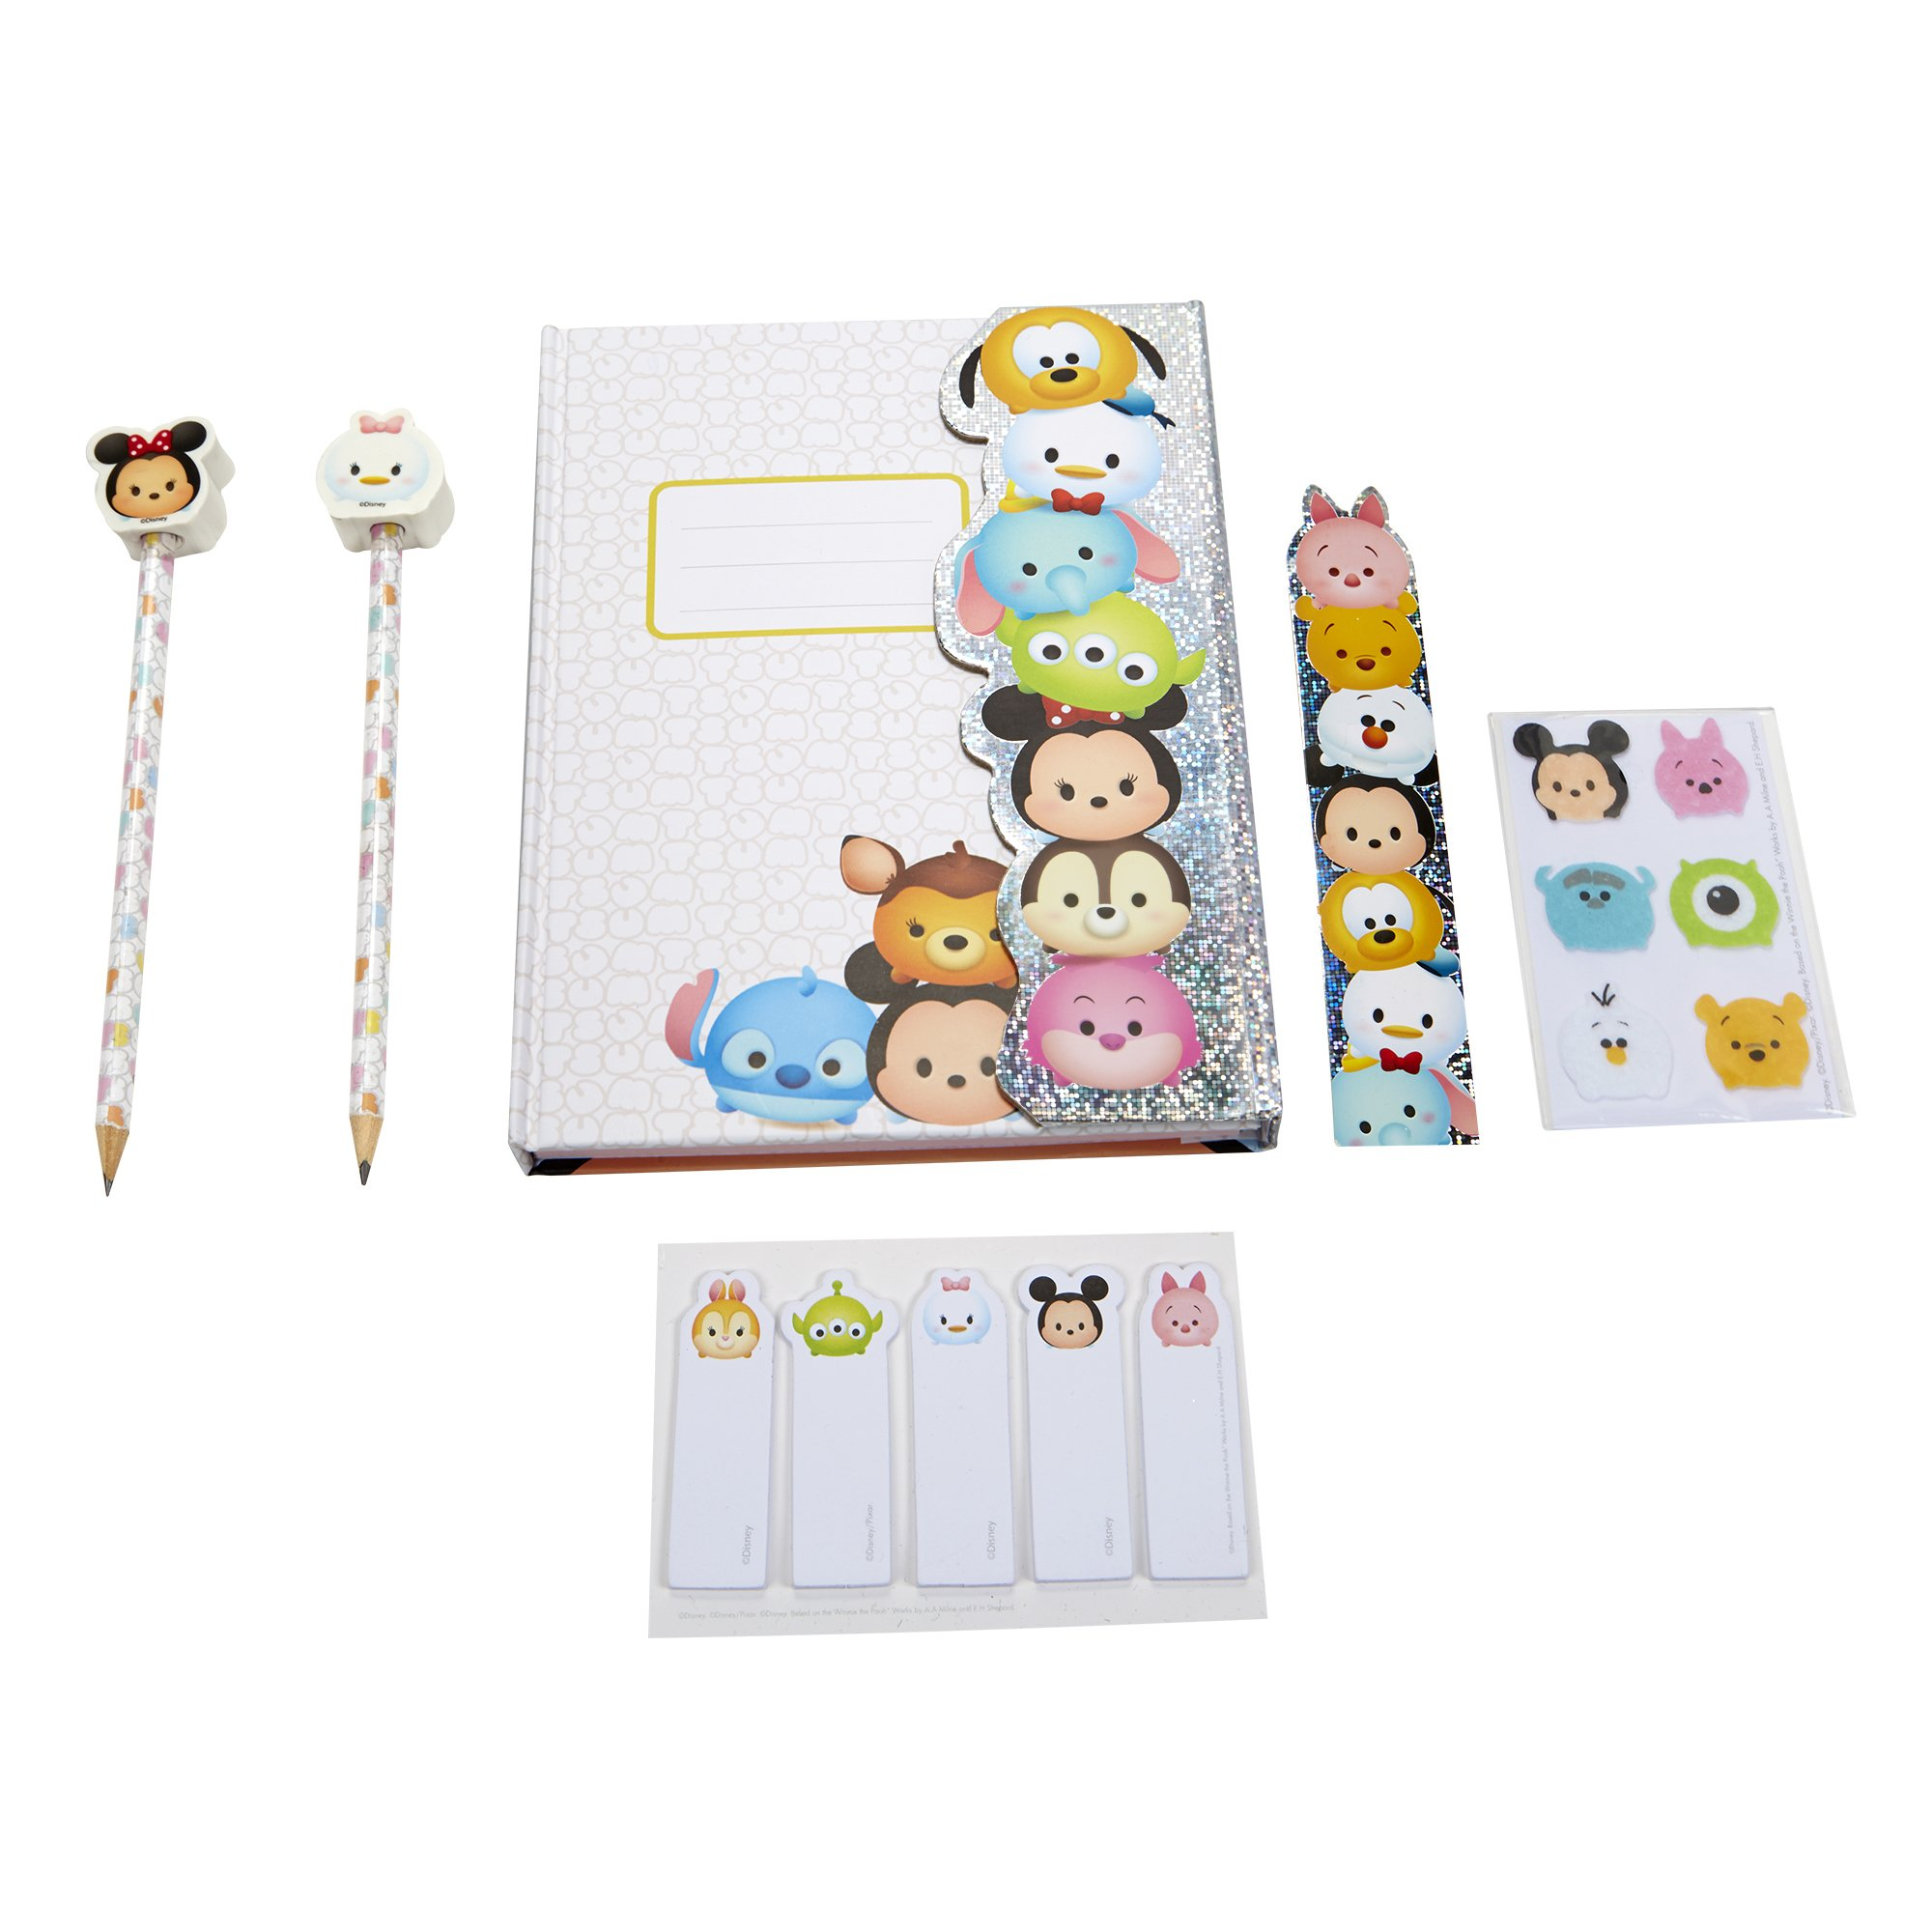 Tsum Tsum Disney Holographic Deluxe Agenda Book with Accessories Playset